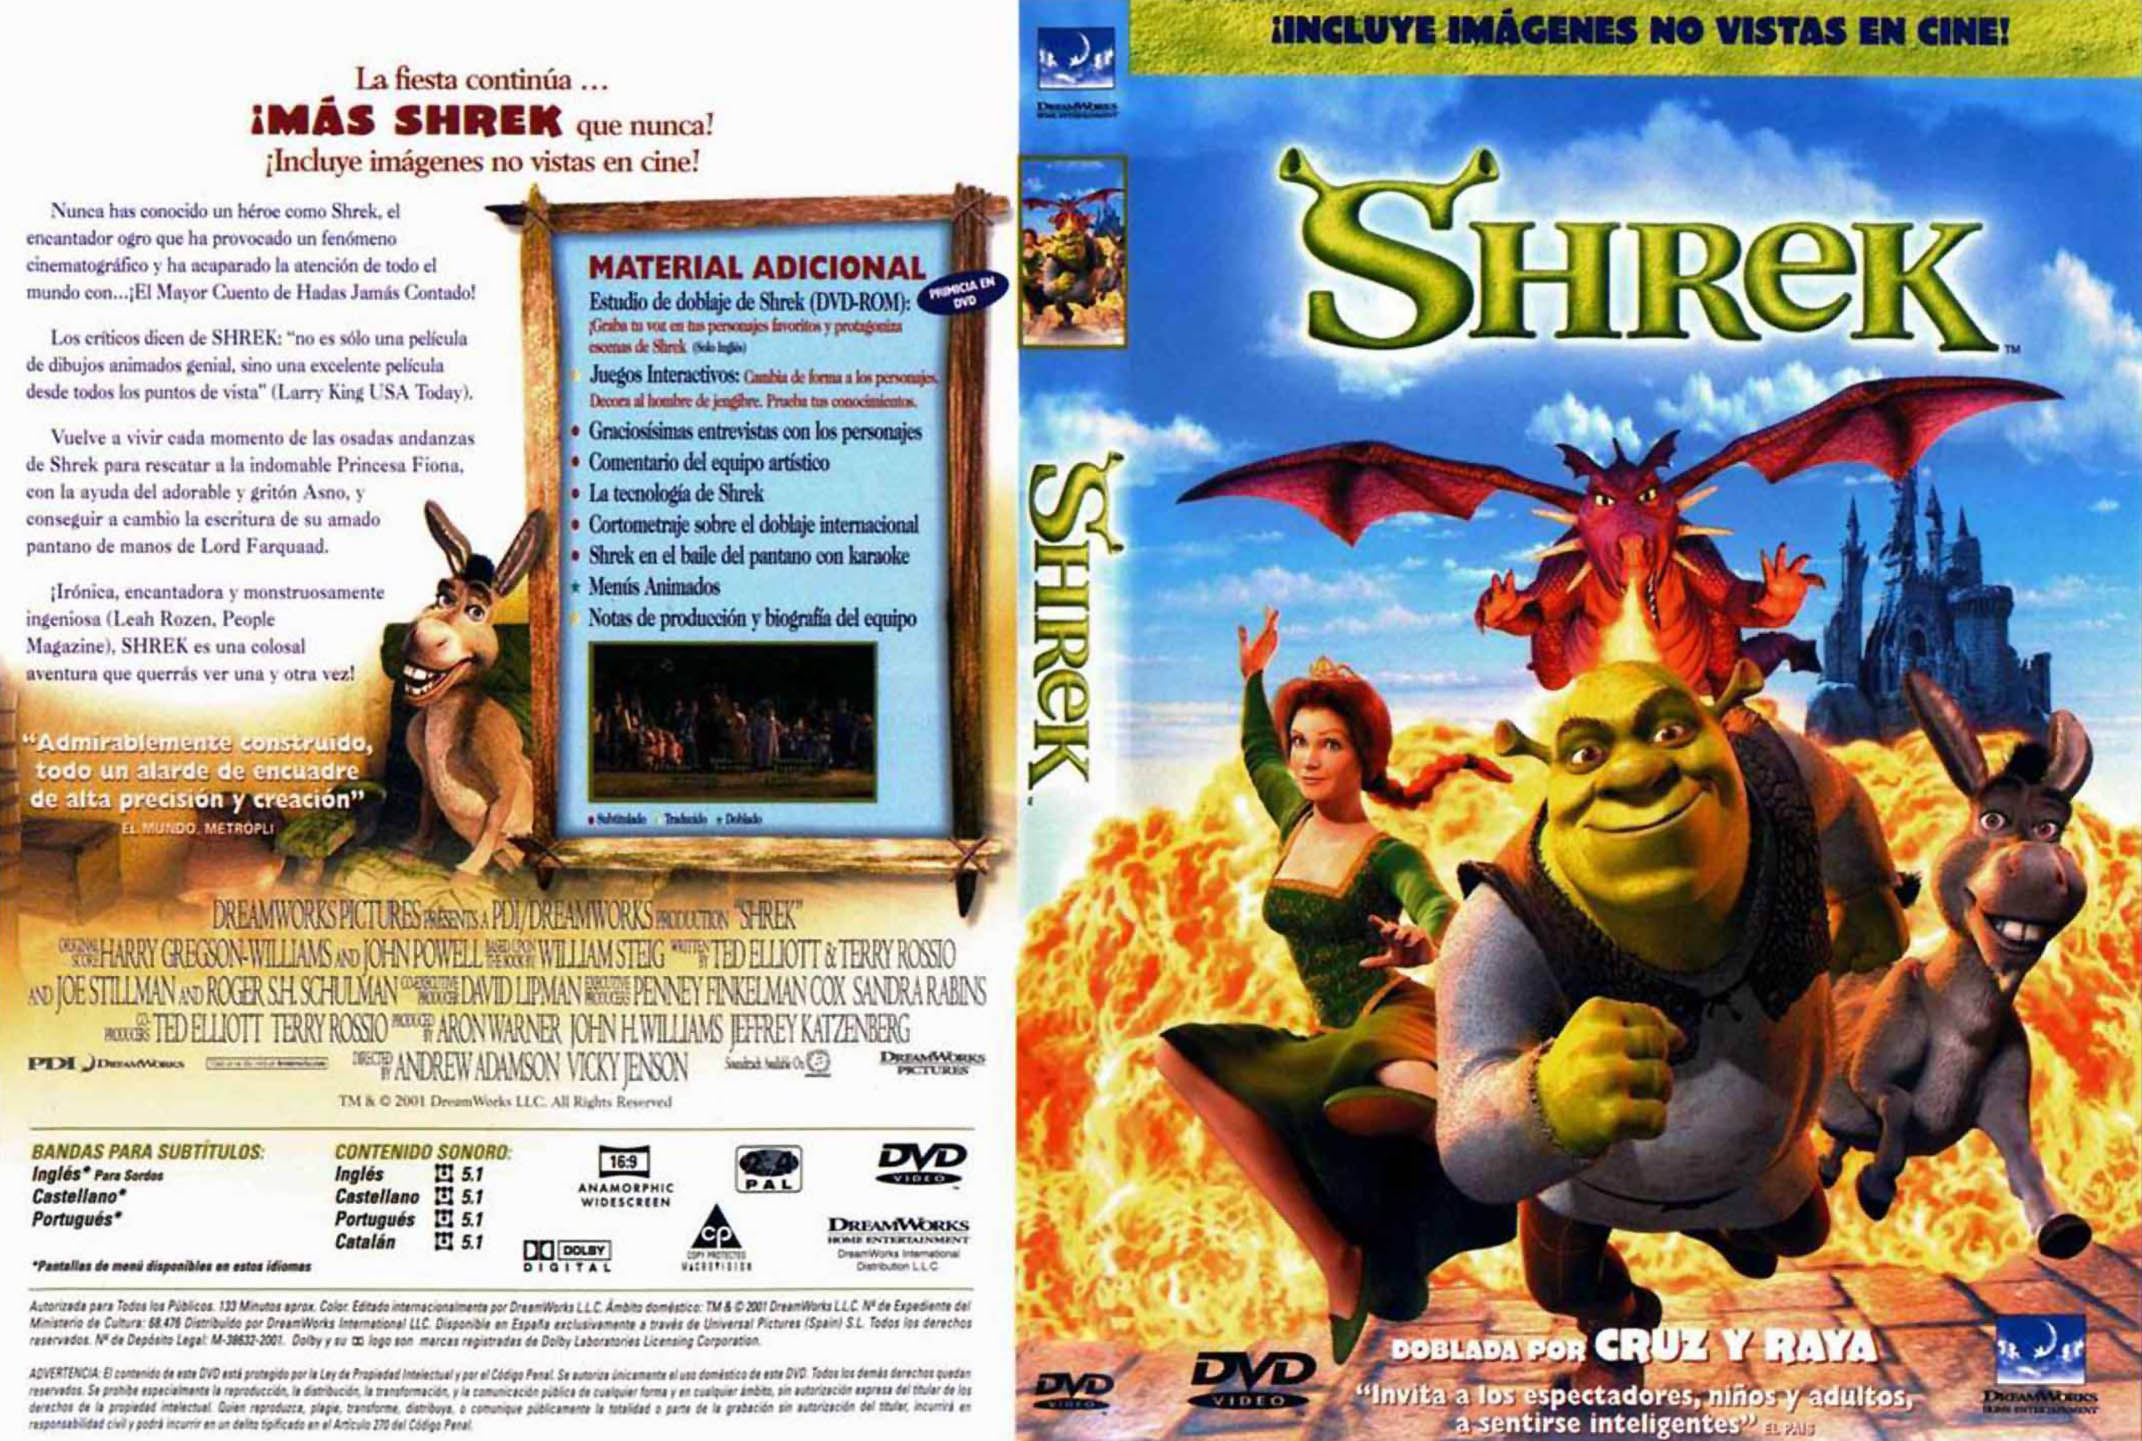 Shrek 1 DVD